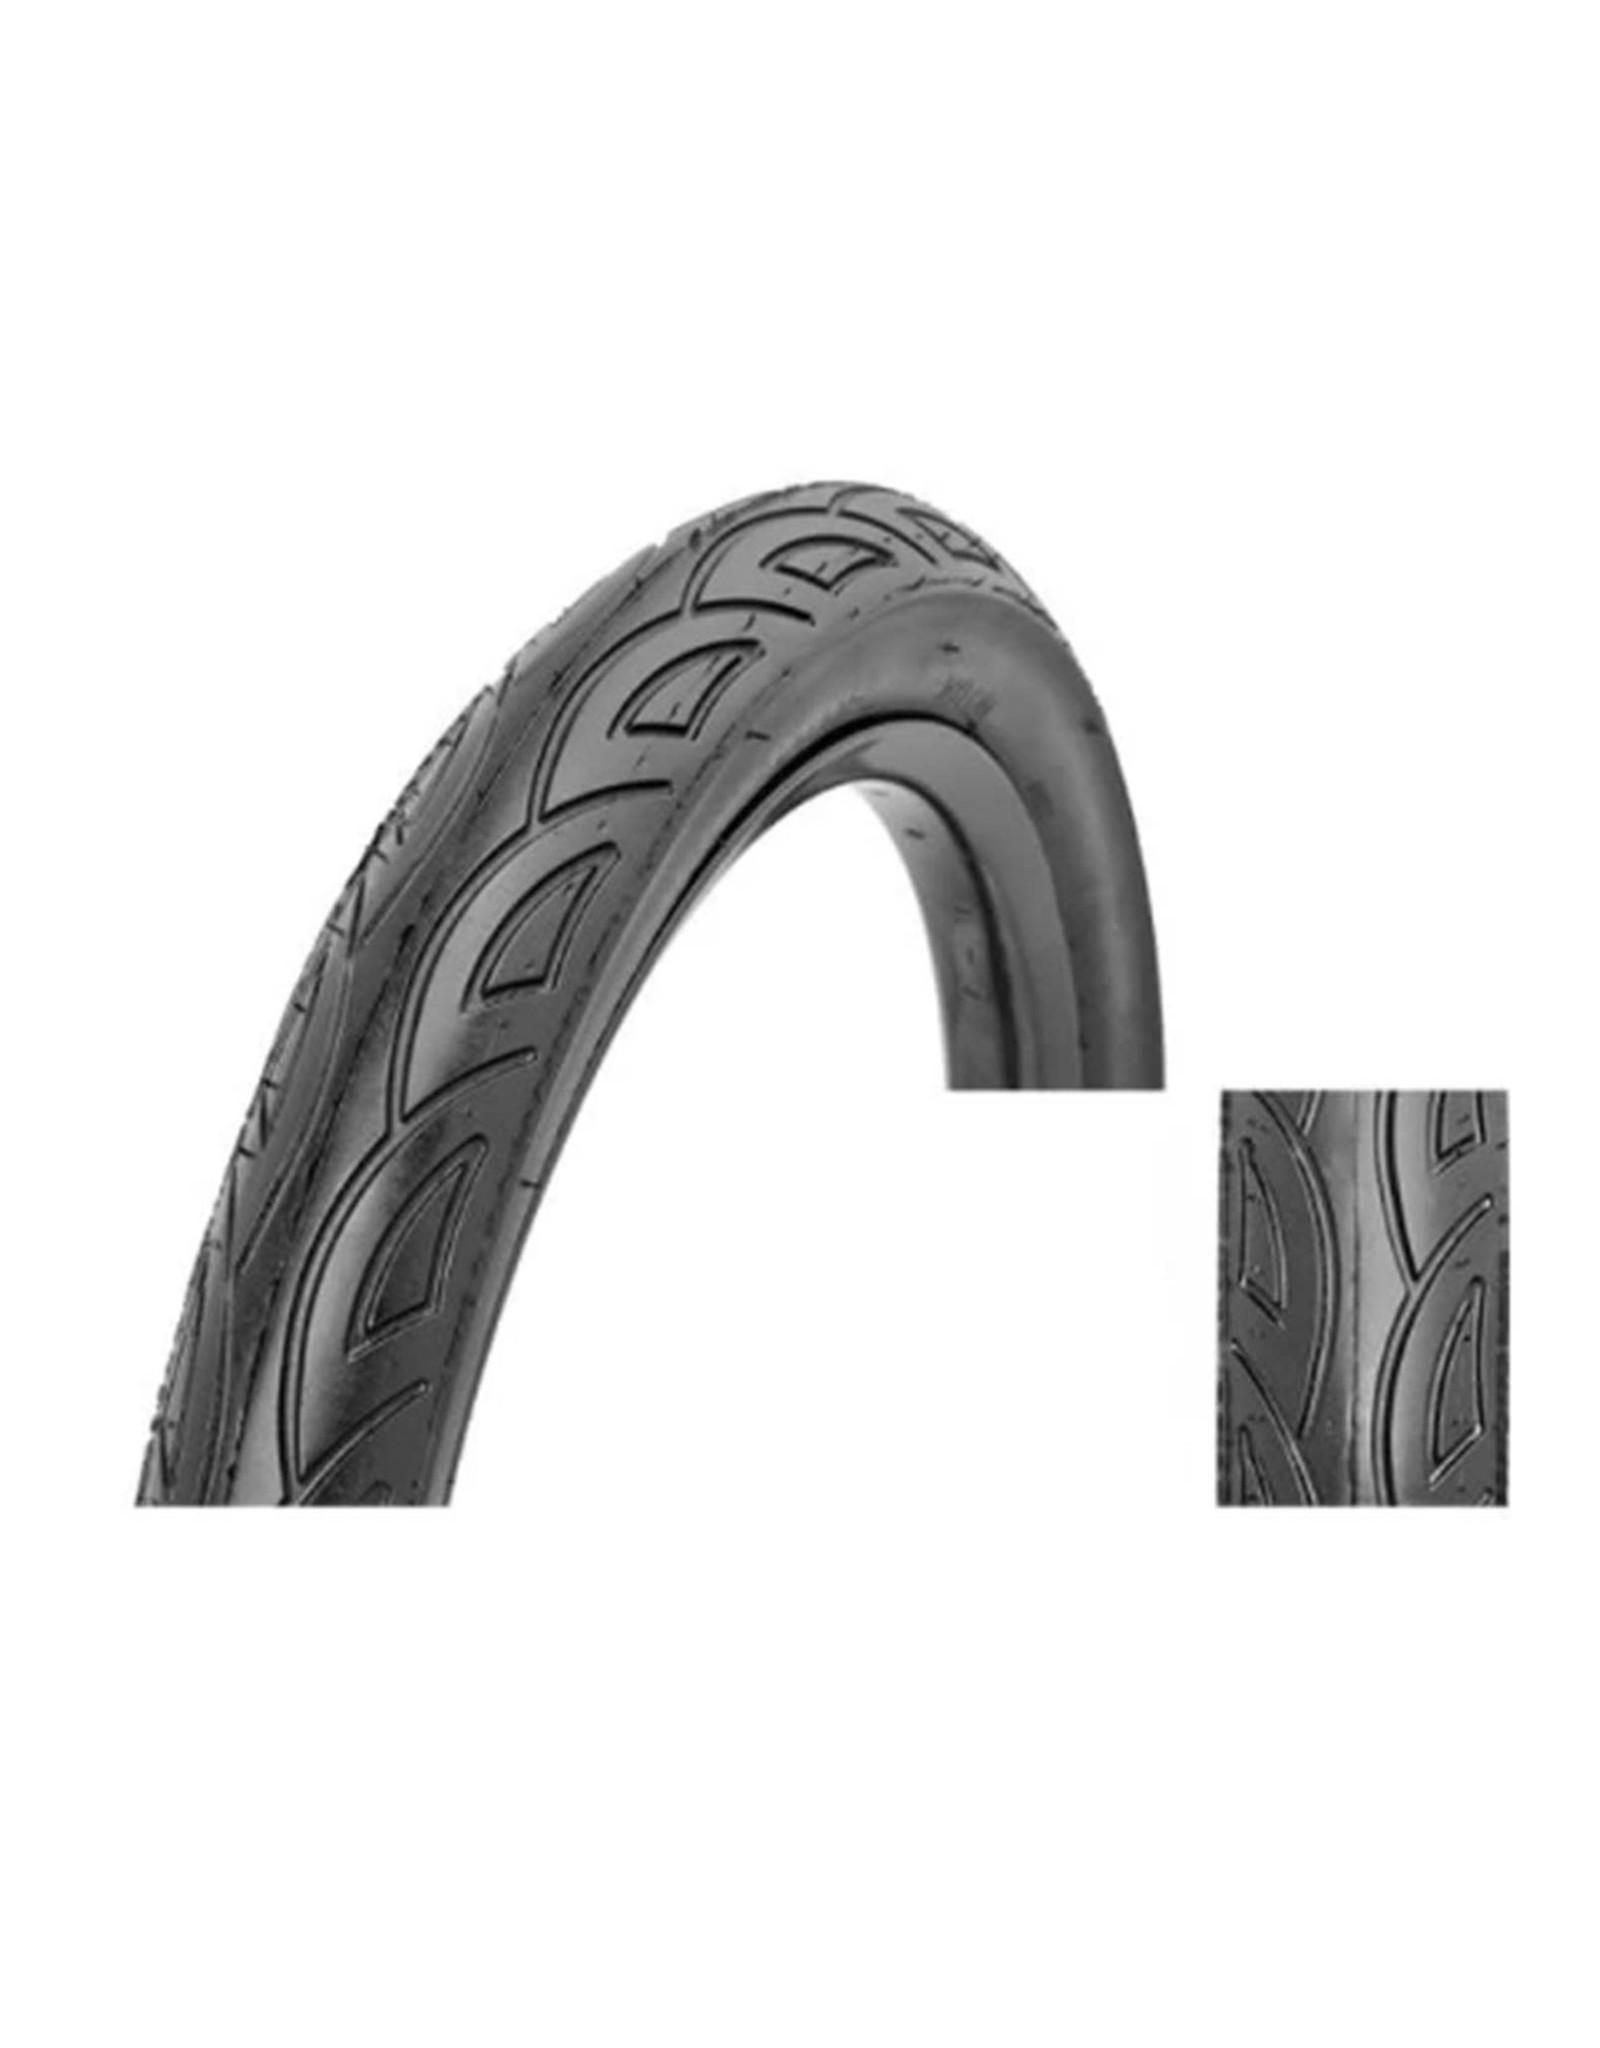 Chaoyang 12 1/2 x 2 1/4 Smooth Tyre